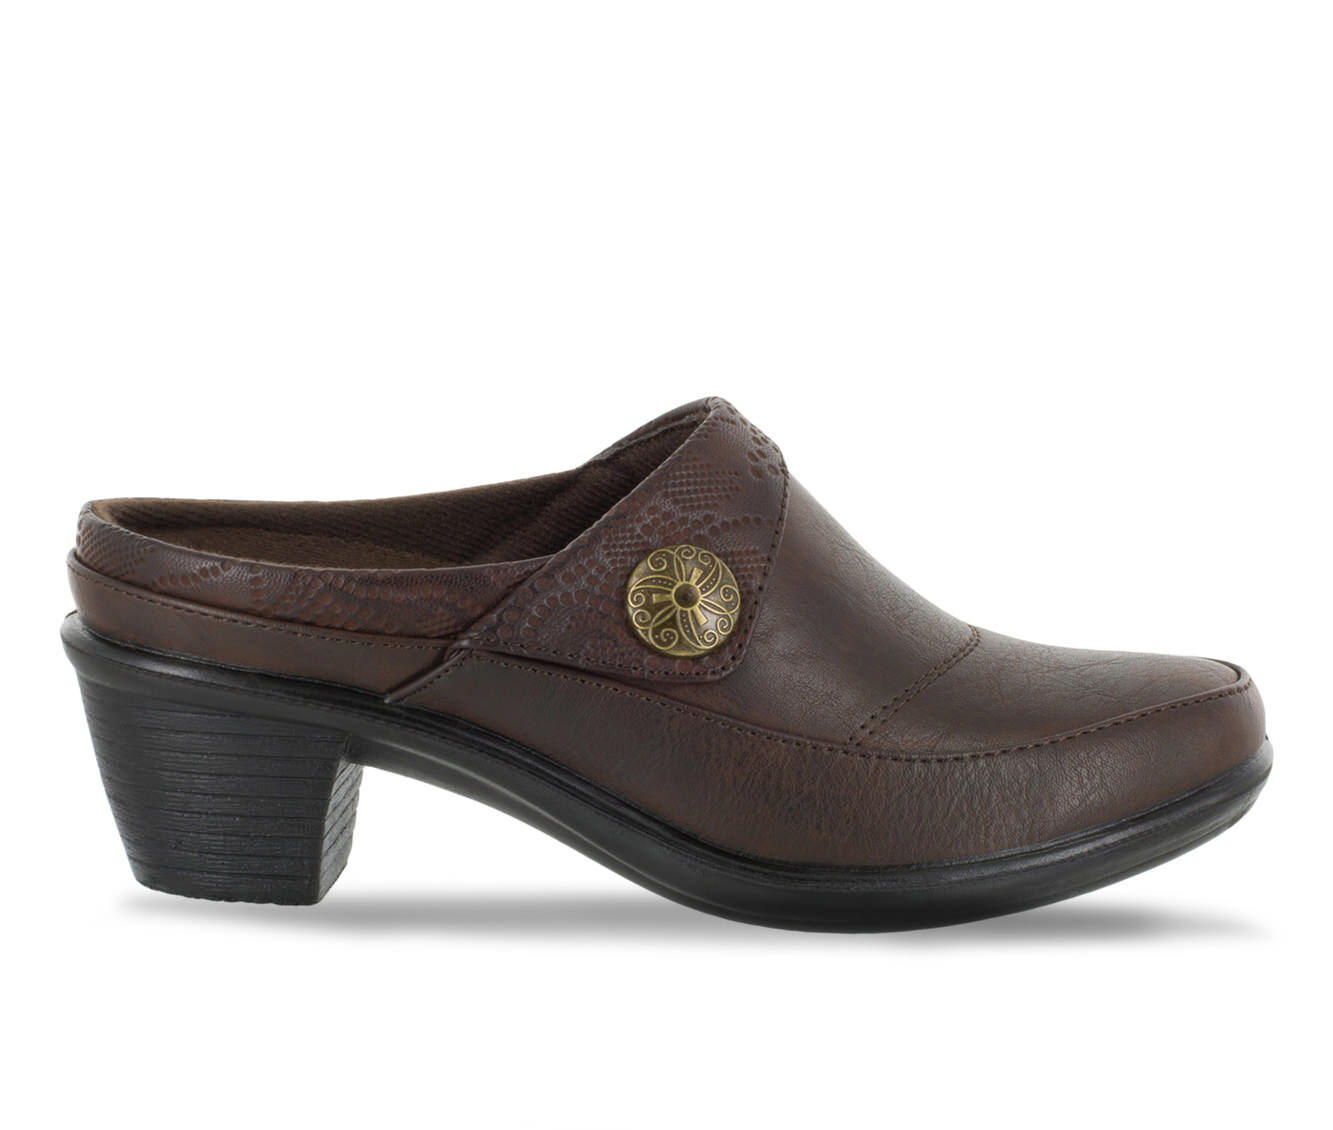 Women's Easy Street Journey Shoes Brown/Embossed